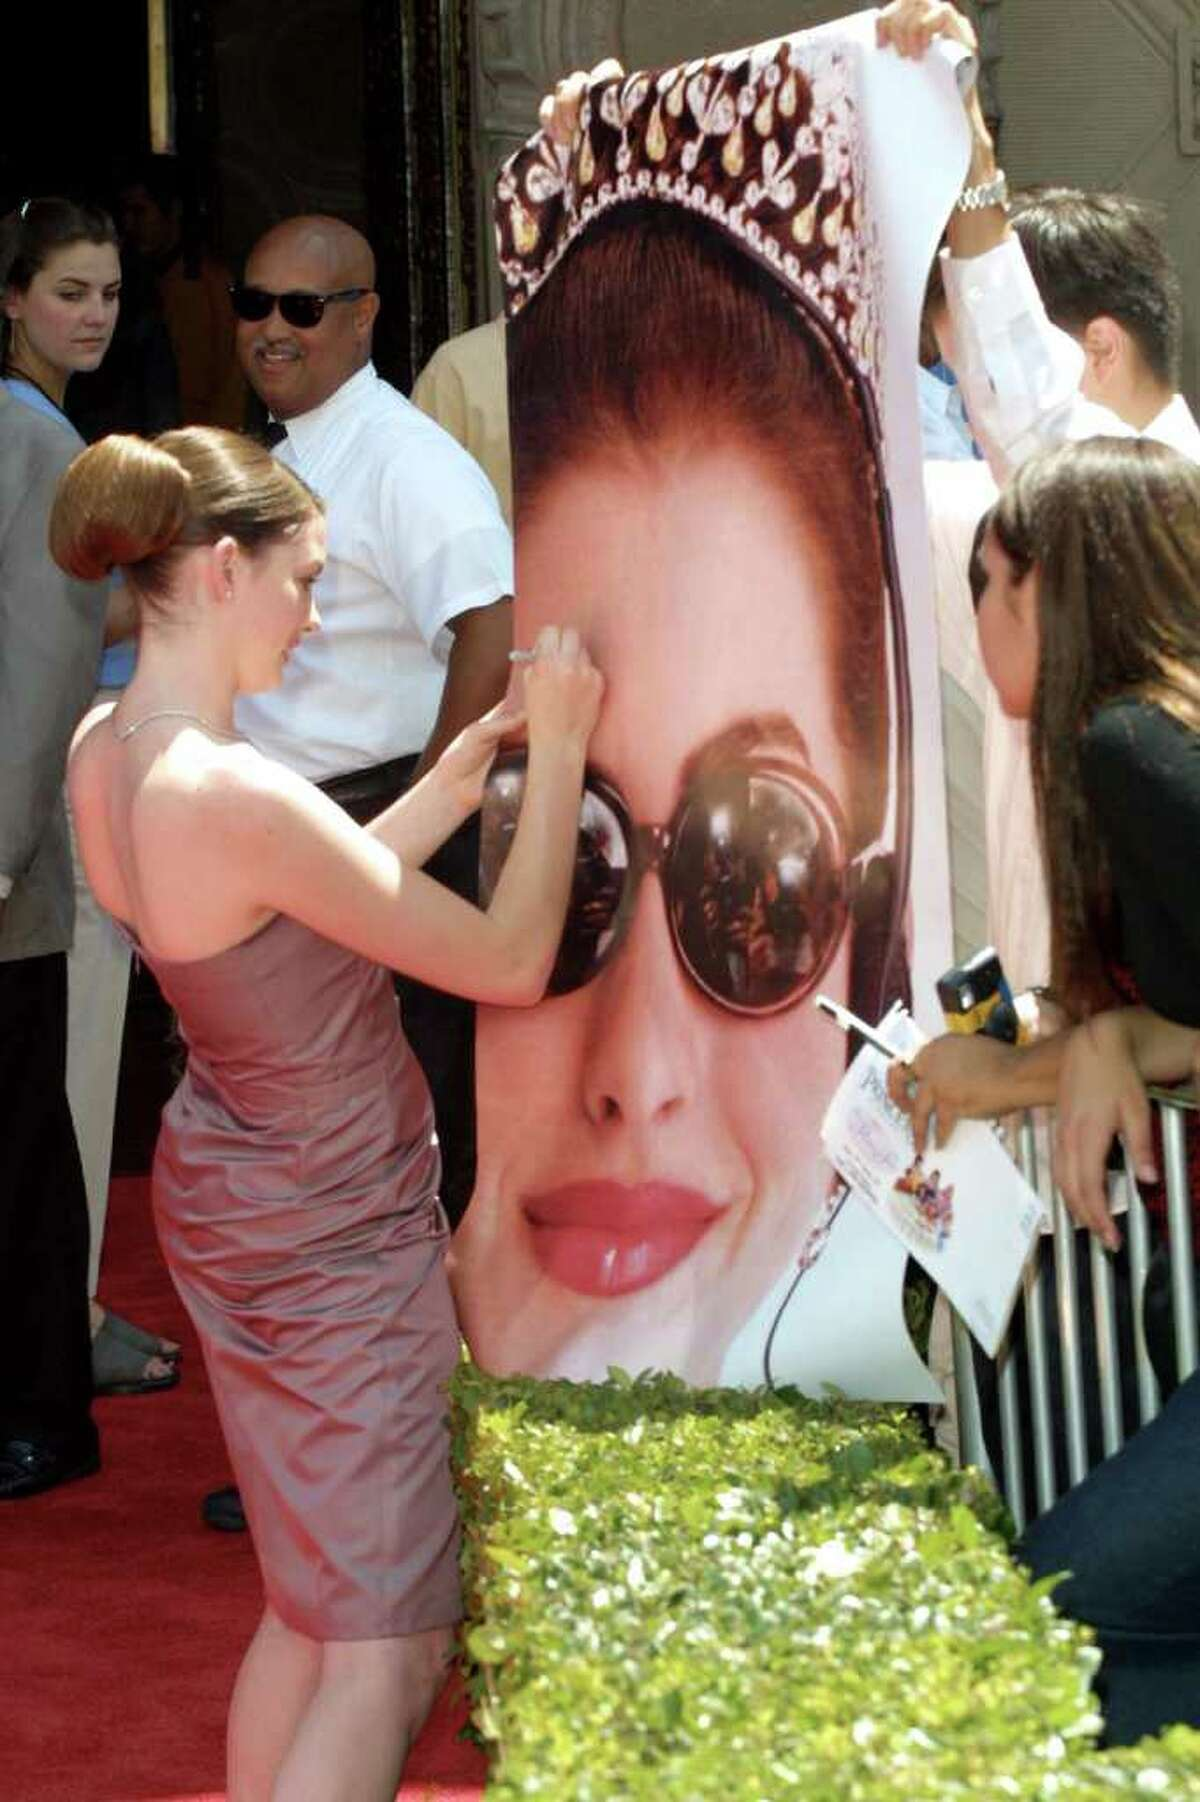 392519 02: Actress Anne Hathaway arrives for the world premiere of